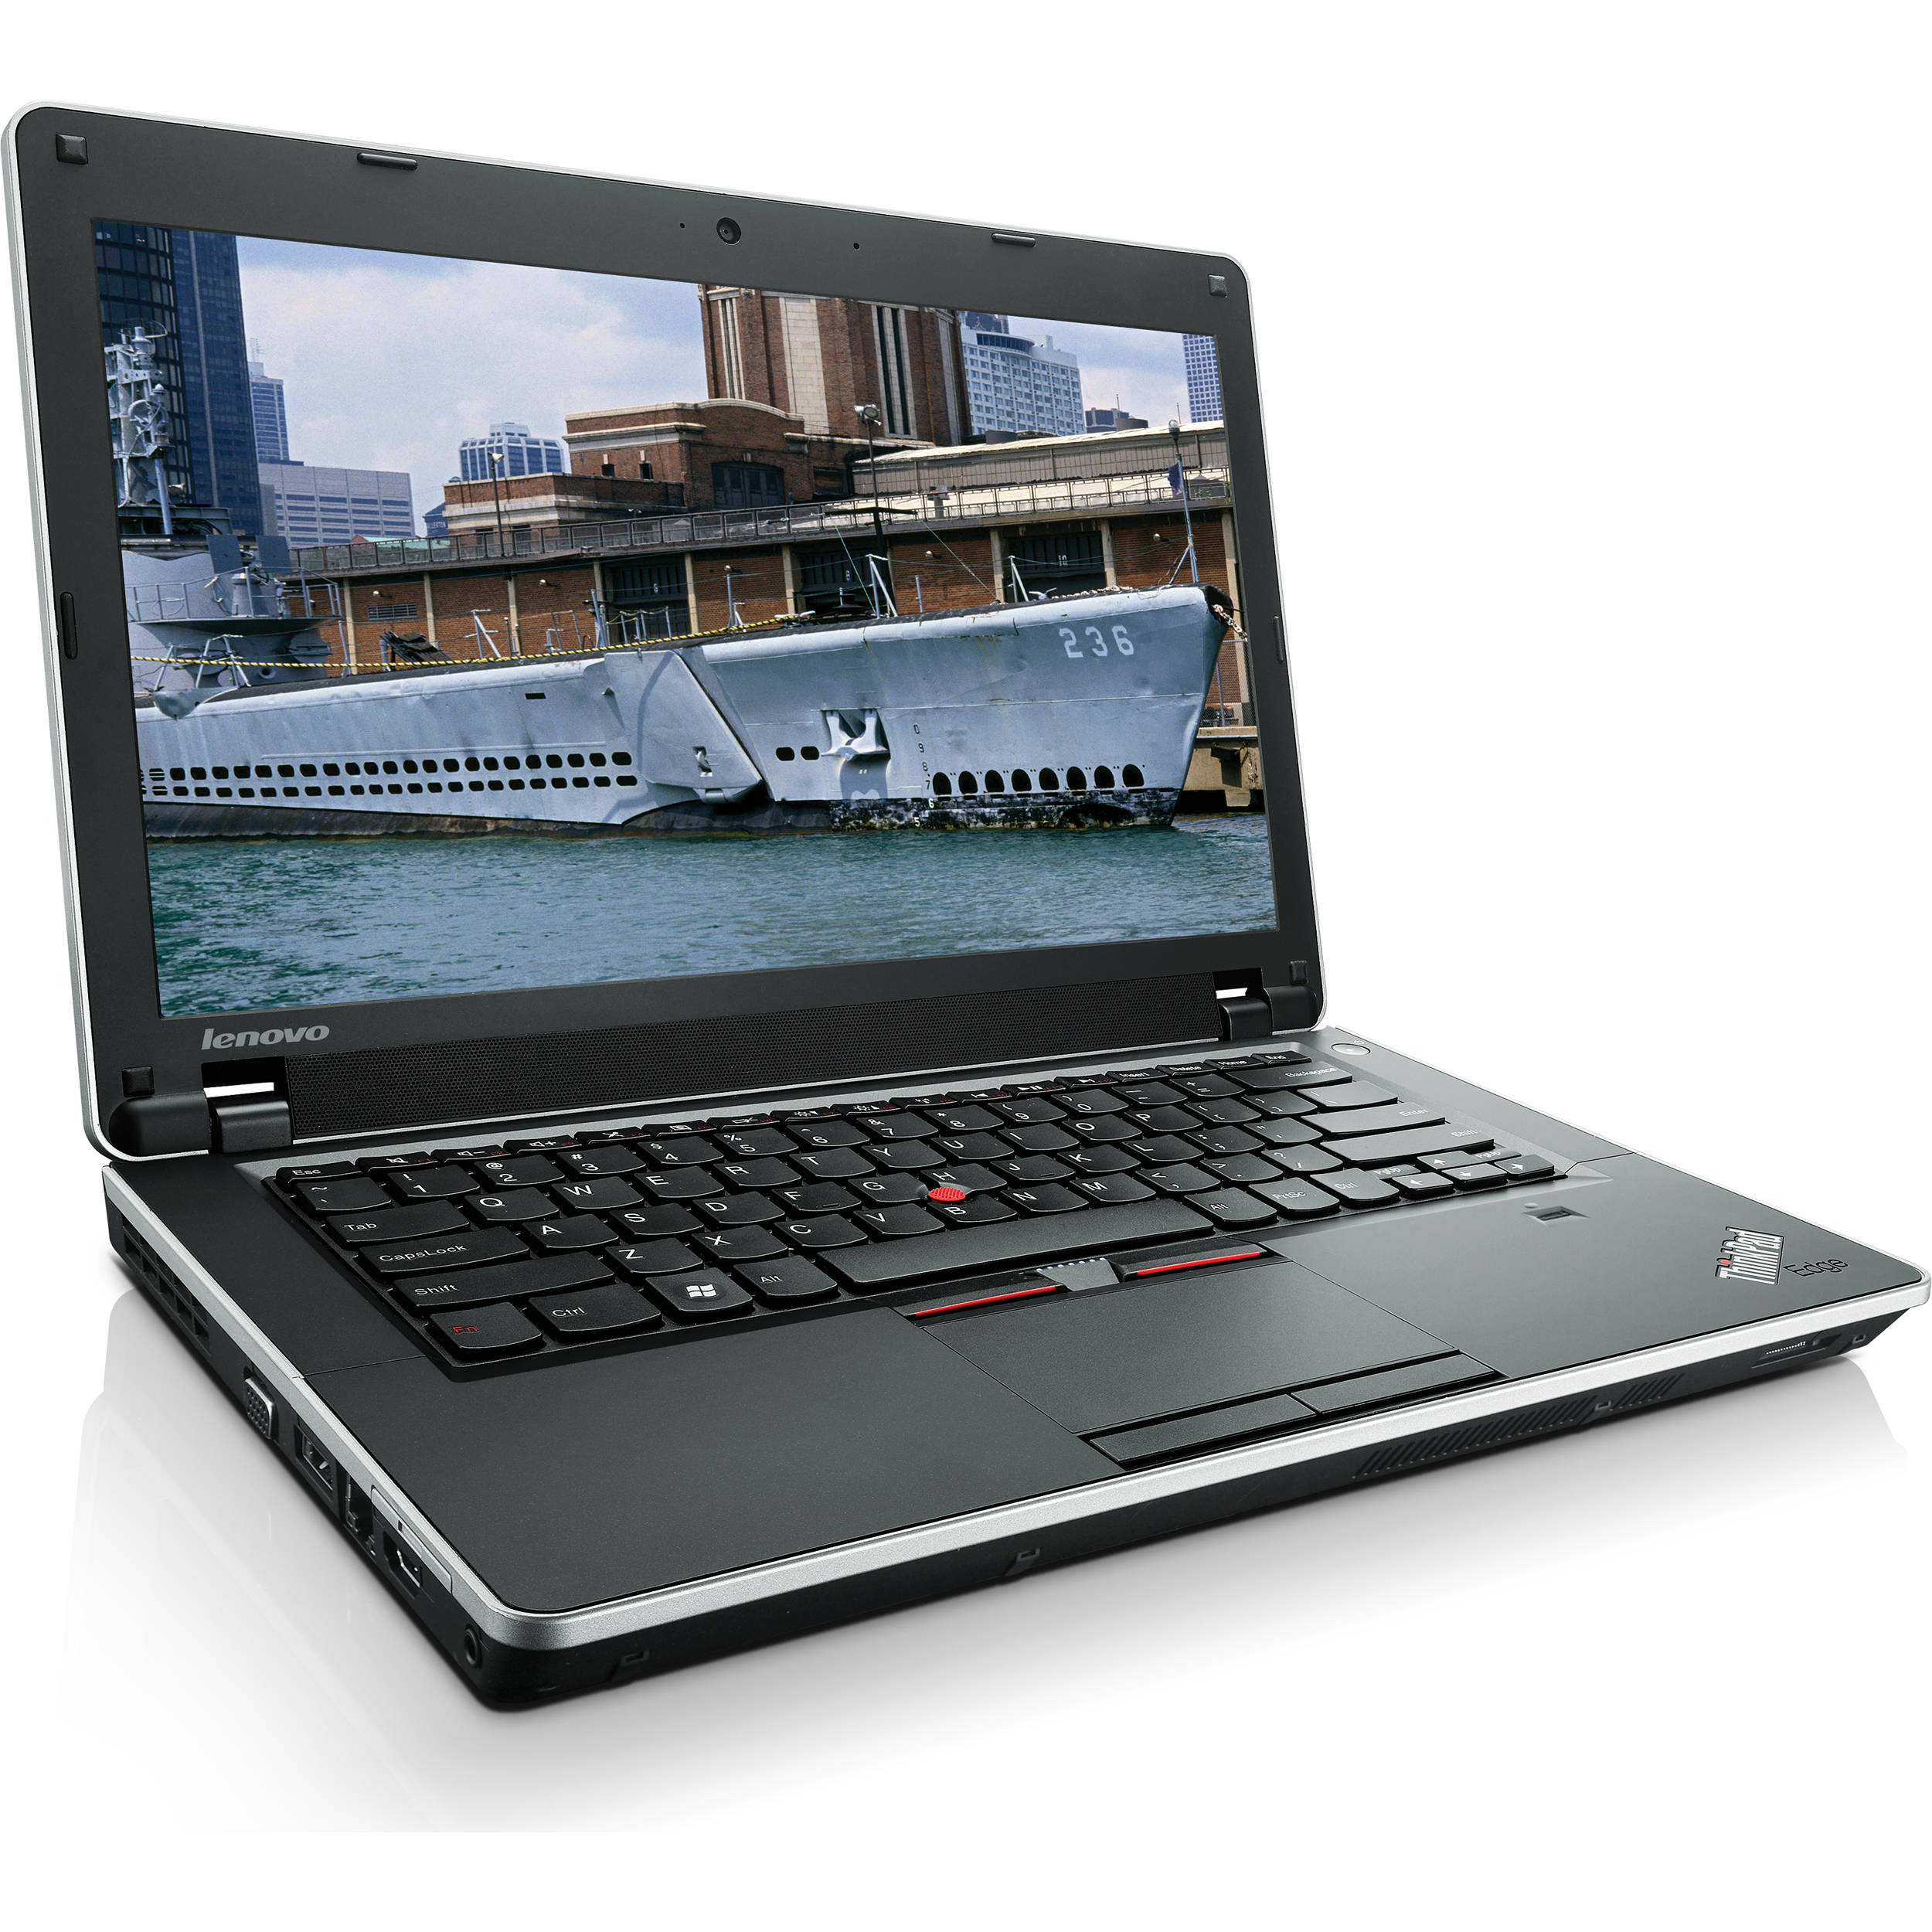 DOWNLOAD DRIVERS: LENOVO THINKPAD EDGE E420S 1X1 WLAN